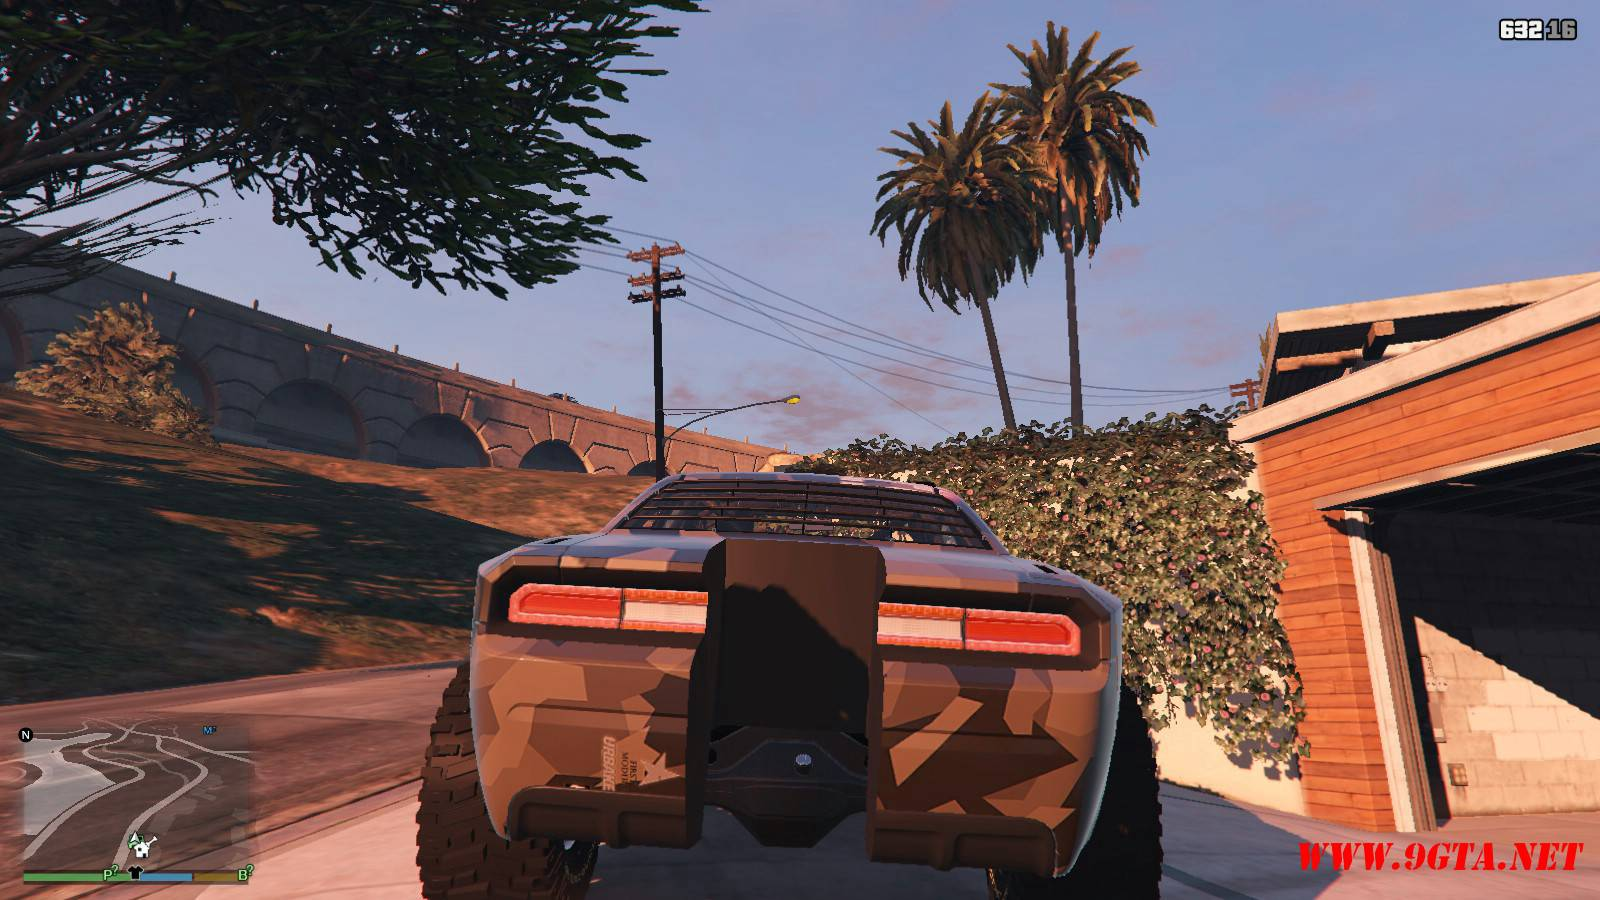 Dodge Charger RAID v1.0 Mod For GTA5 (5)